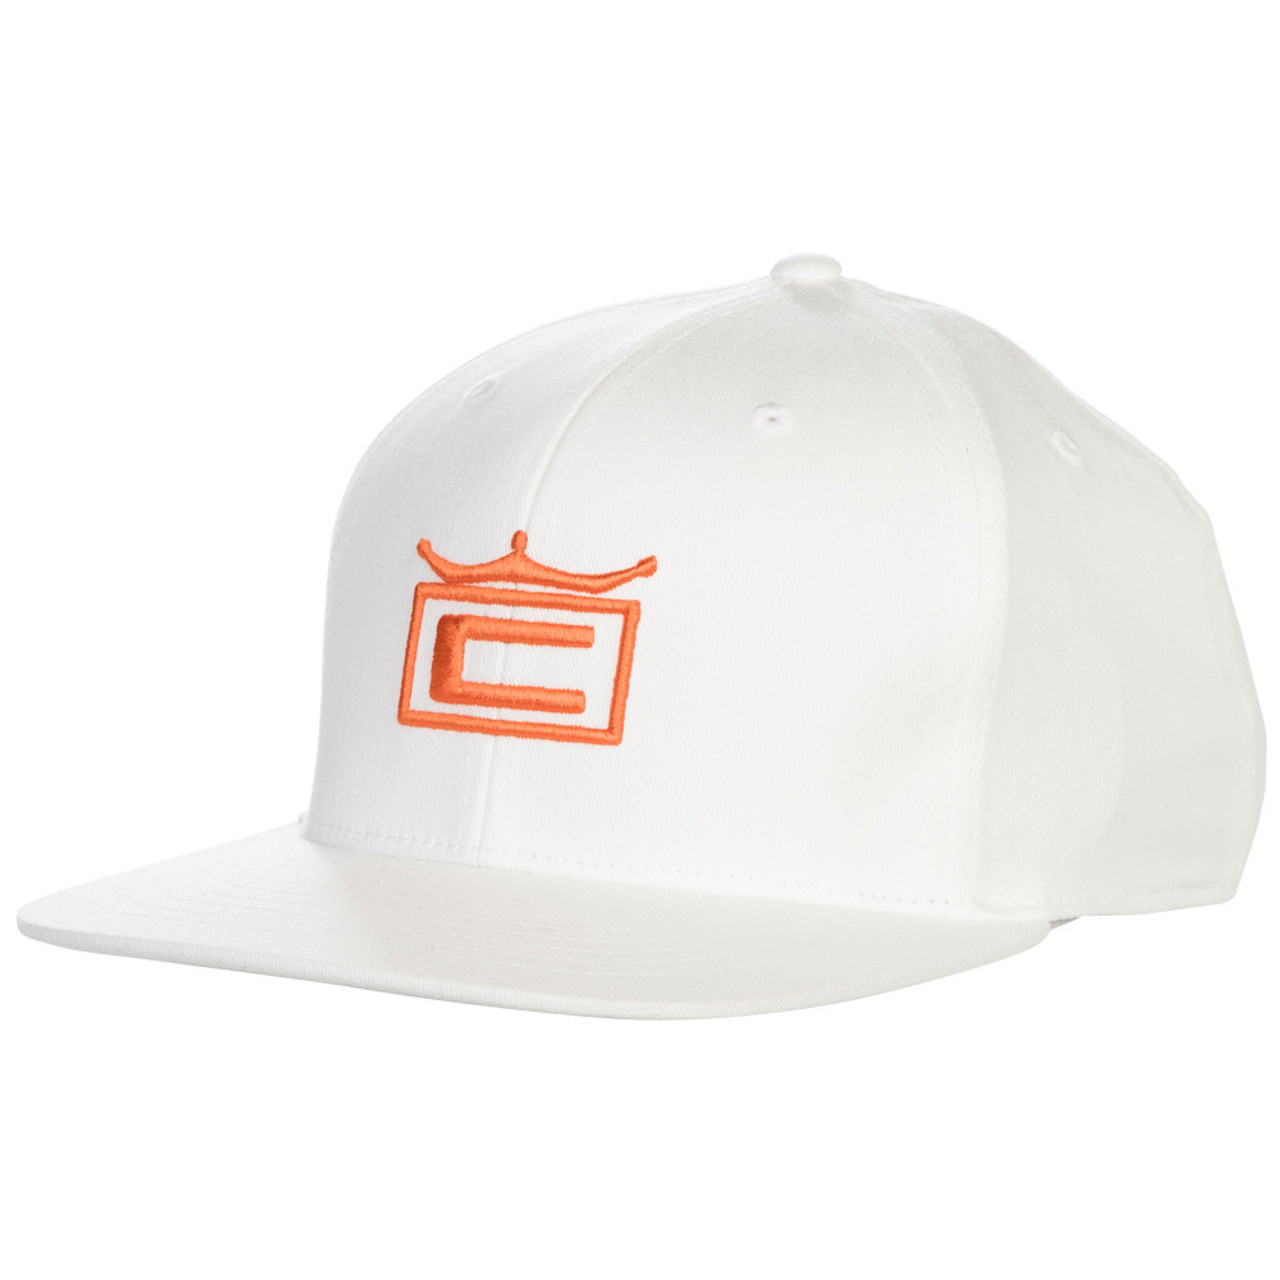 Cobra Tour Crown Snapback Cap - White / Vibrant Orange